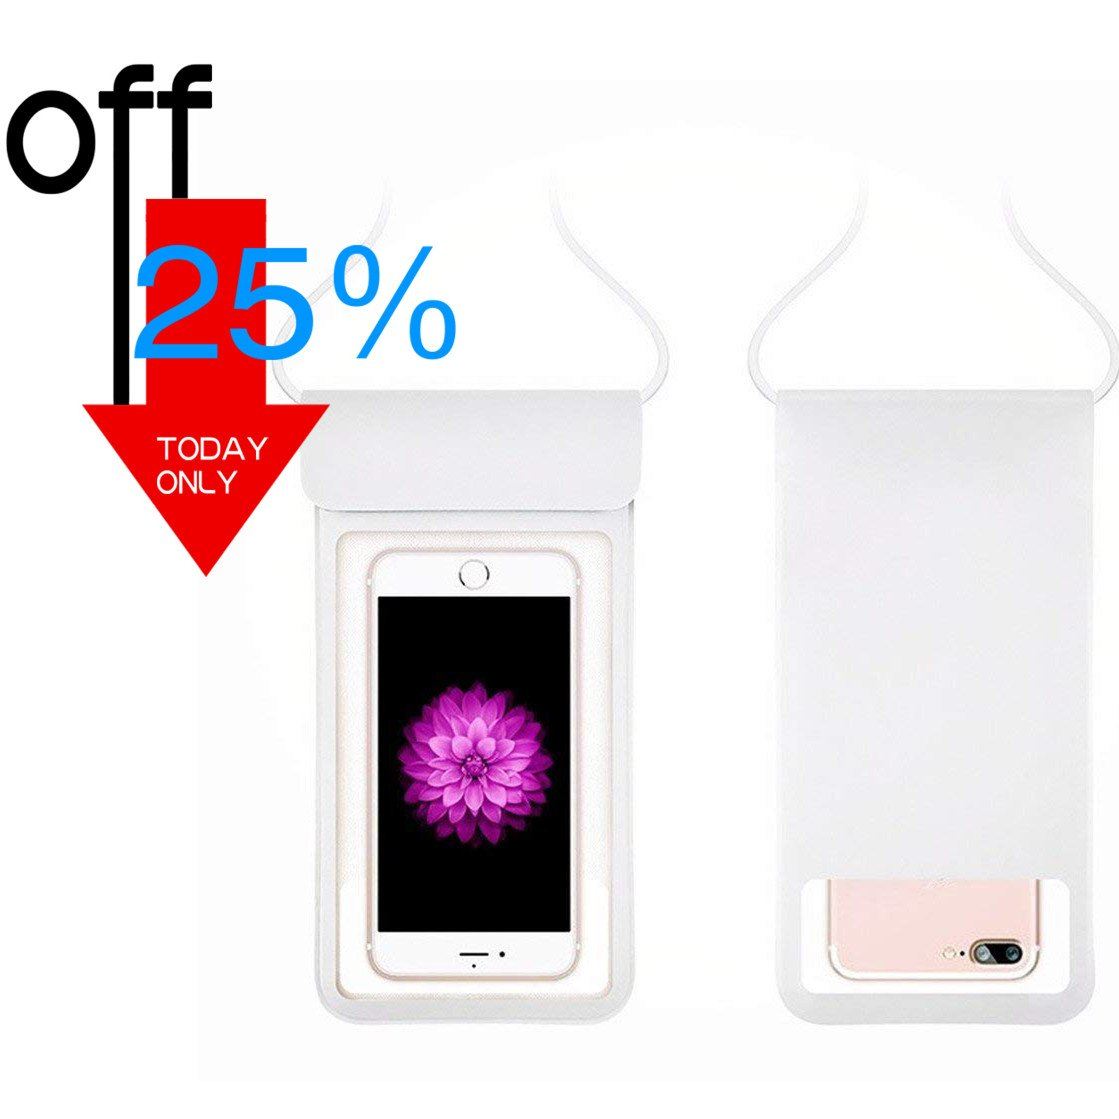 """[2018 NEW] Waterproof Case with Touch ID,Coeuspow Dry Bag Pouch with High Sensitive Fingerprint Recognition for Apple iPhone X 8 7 6 6s Plus, Galaxy etc up to 6.0"""" (white)"""